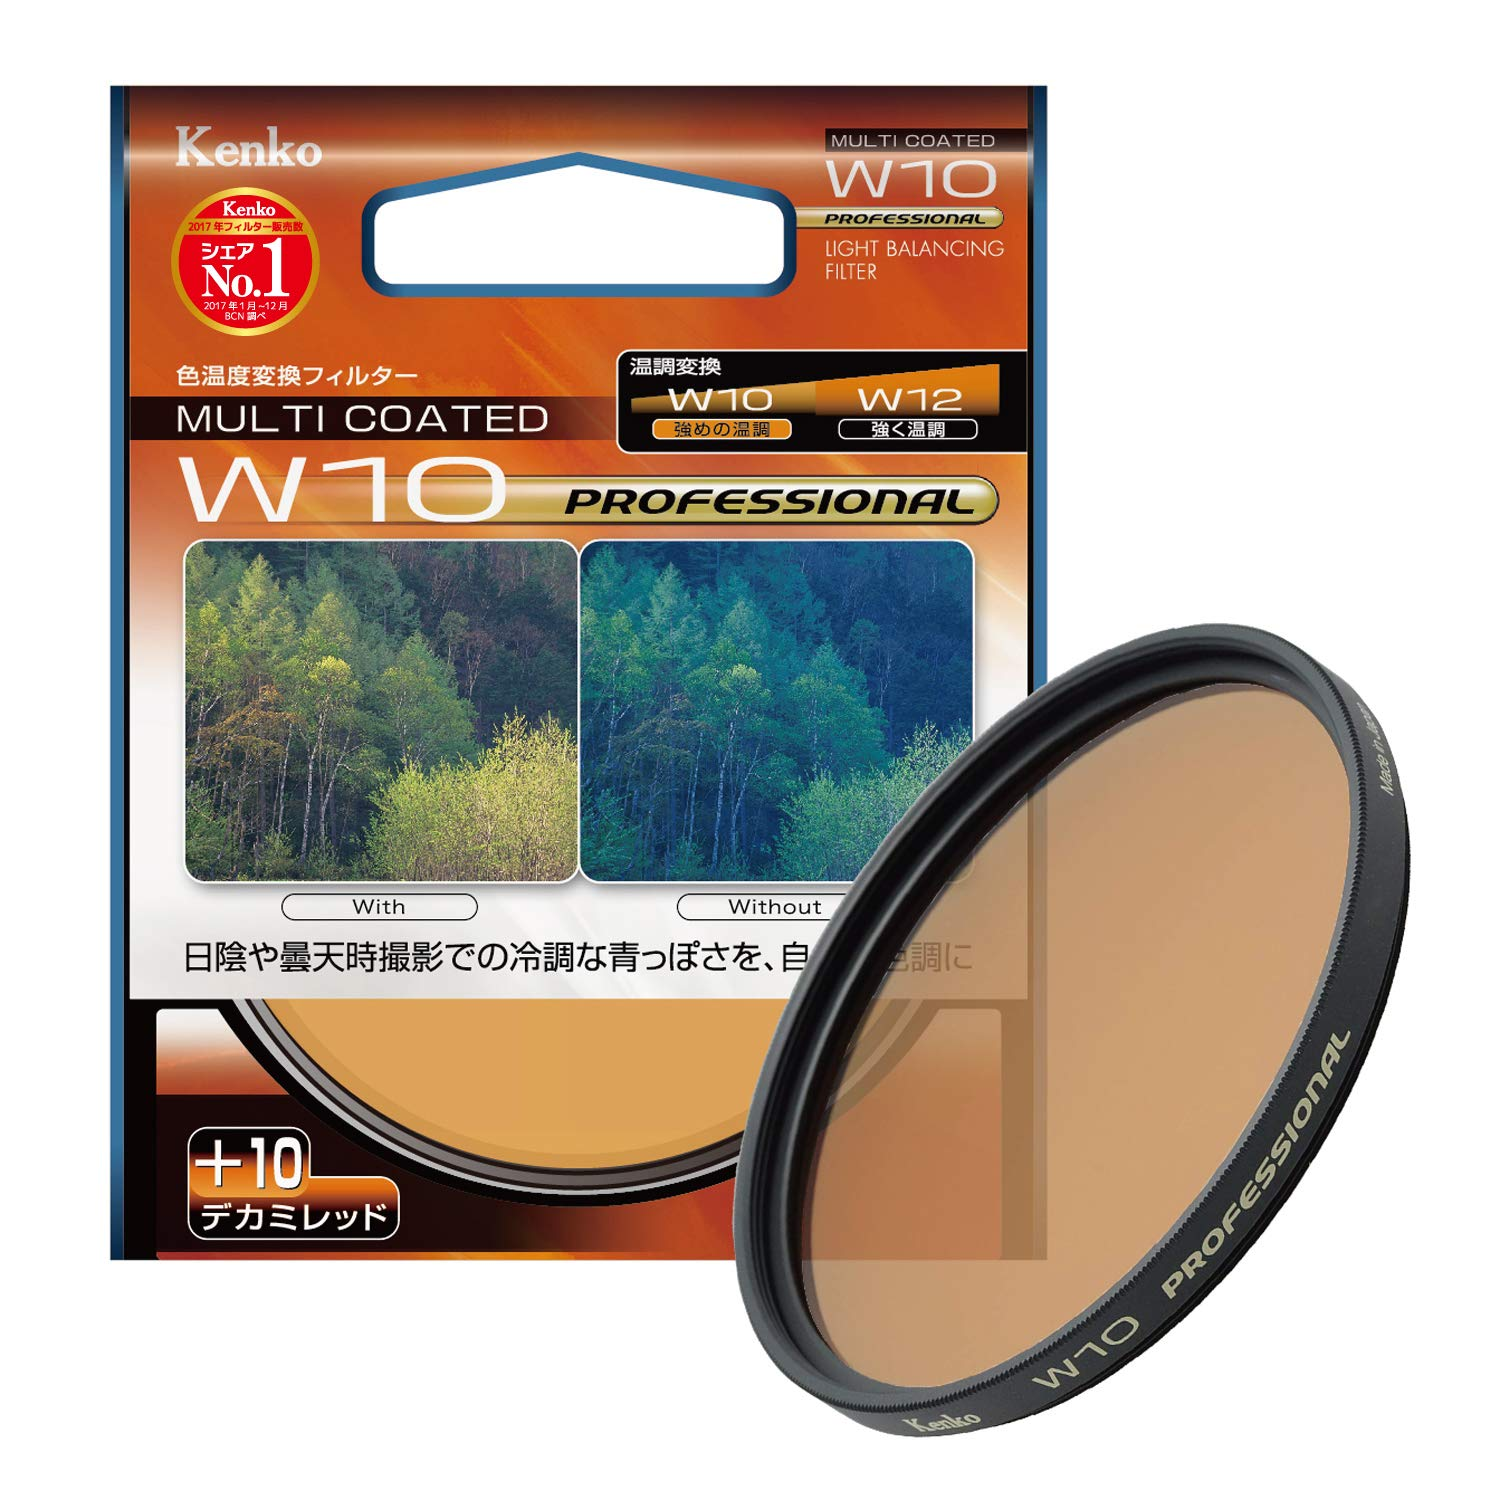 Kenko 82mm W10 Professional Multi-Coated Camera Lens Filters by Kenko